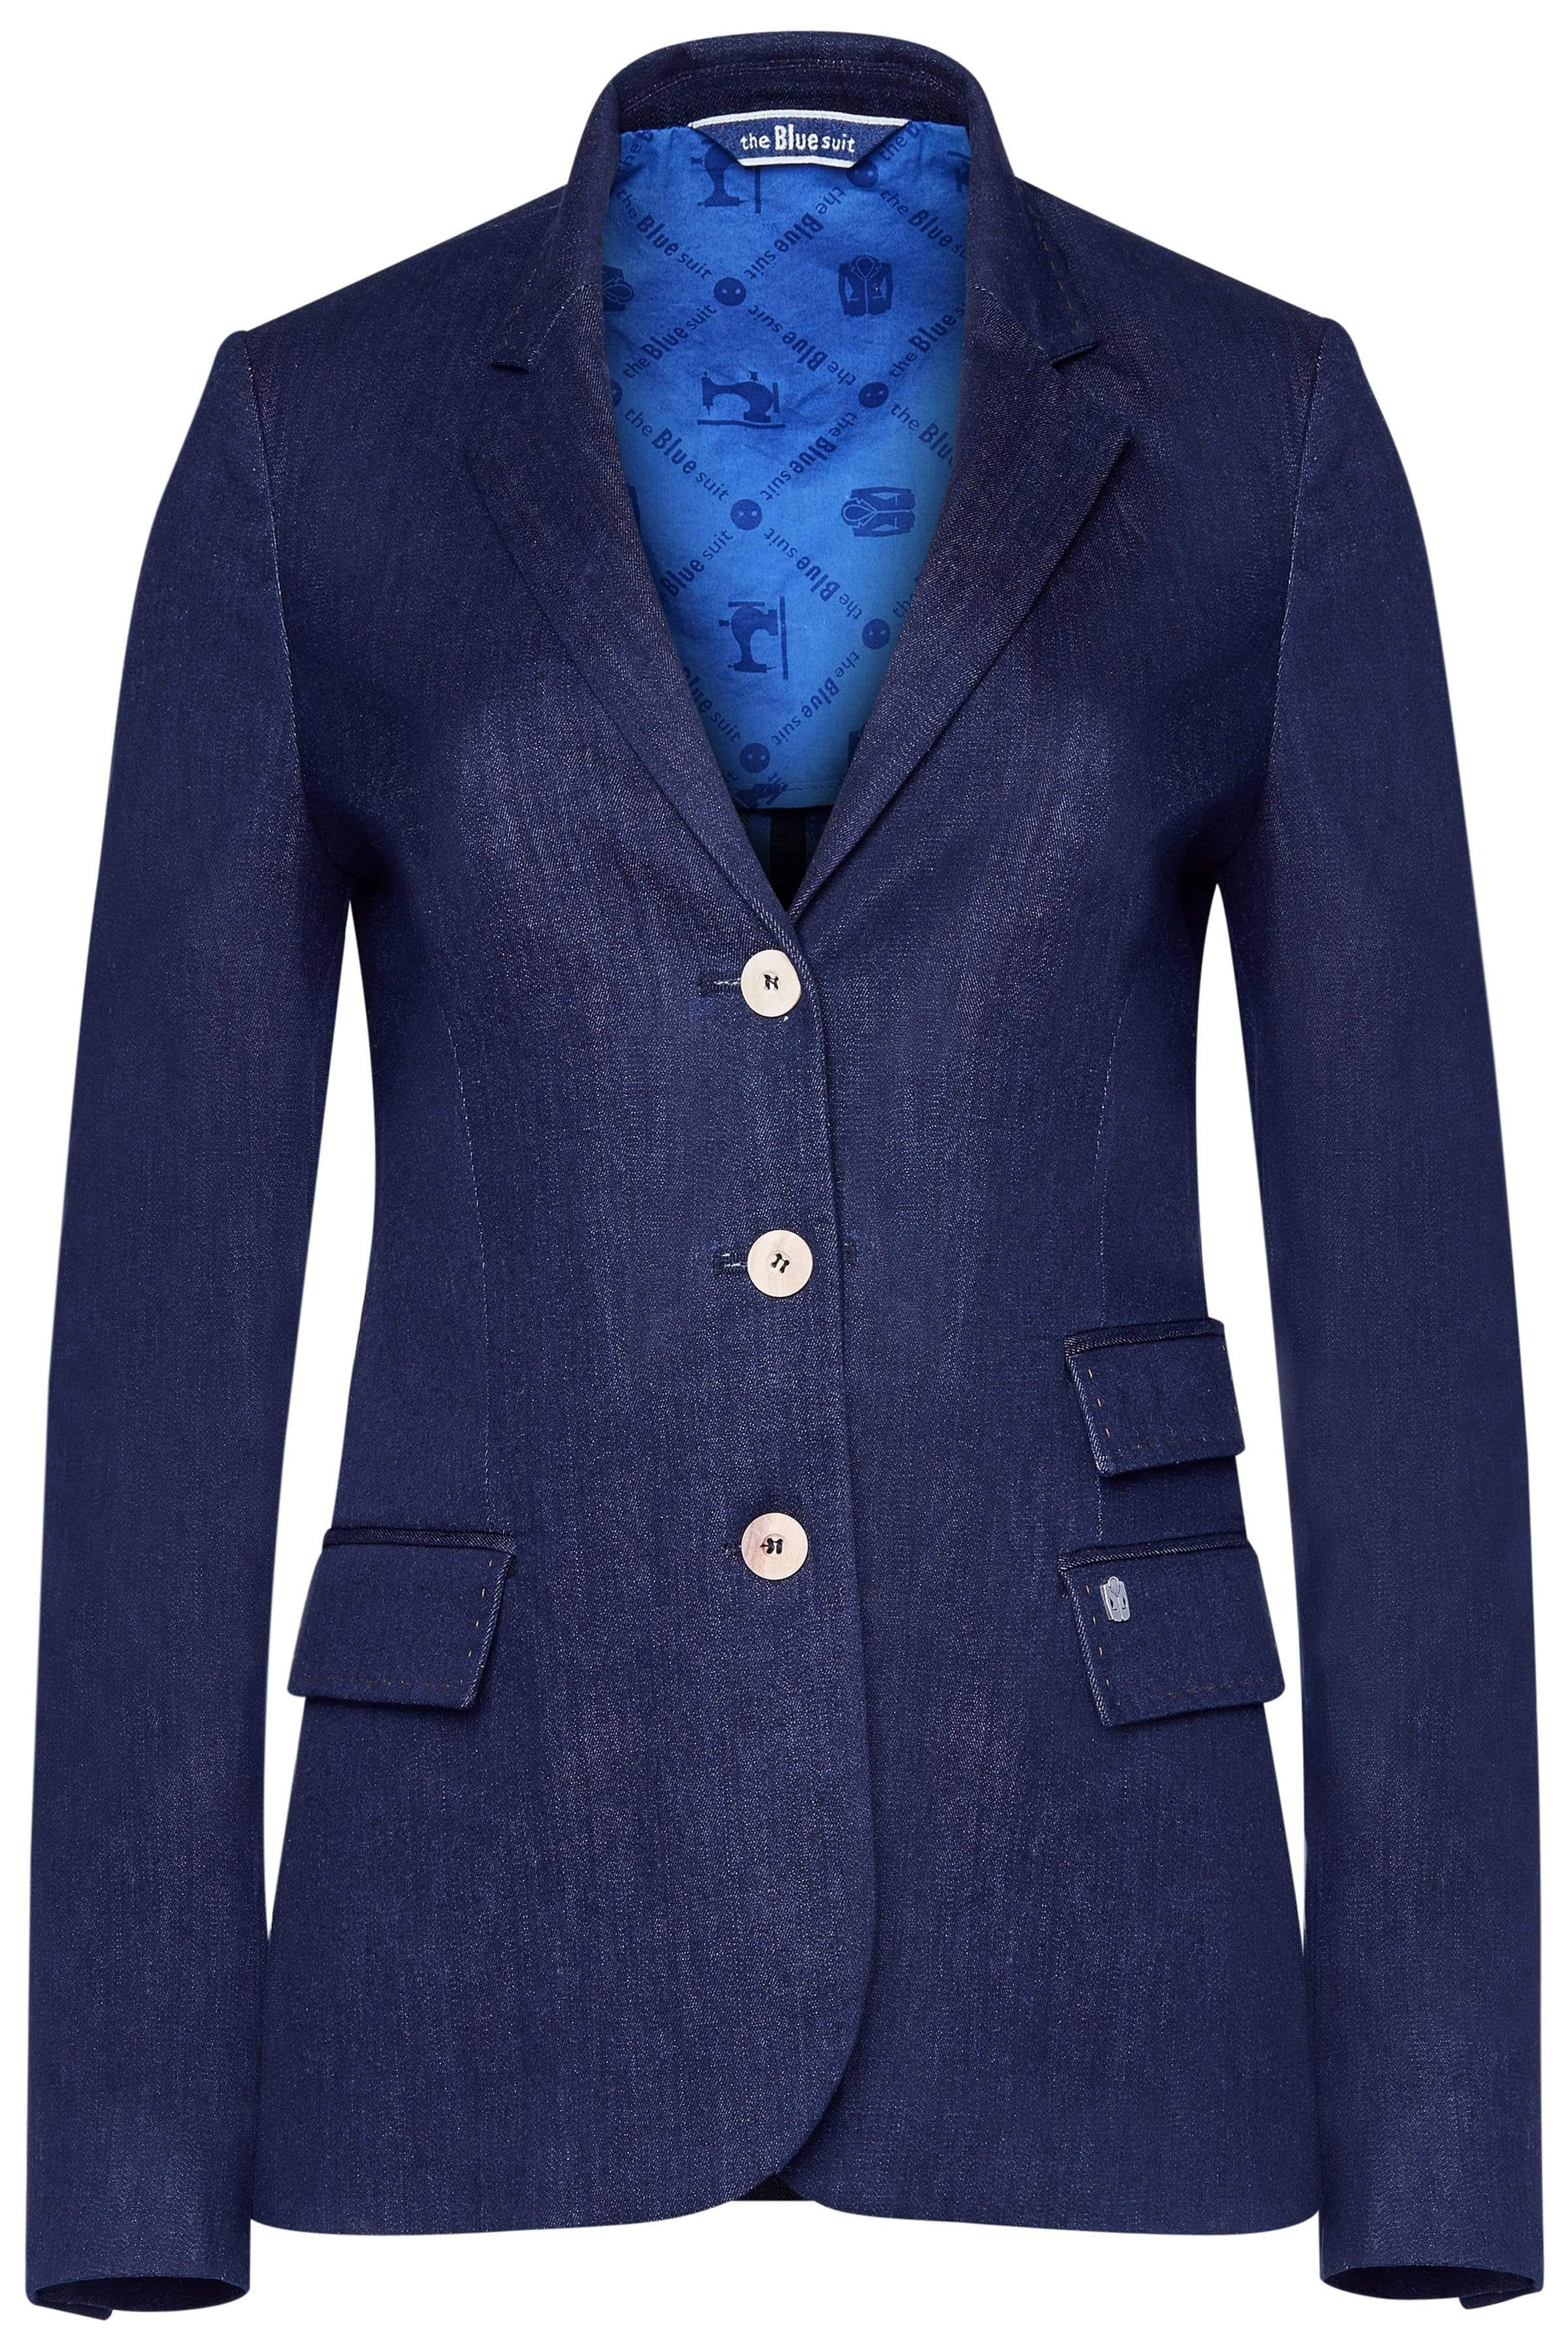 the Blue suit jackets ELLEN Jacket in Organic Cotton. sustainable fashion ethical fashion